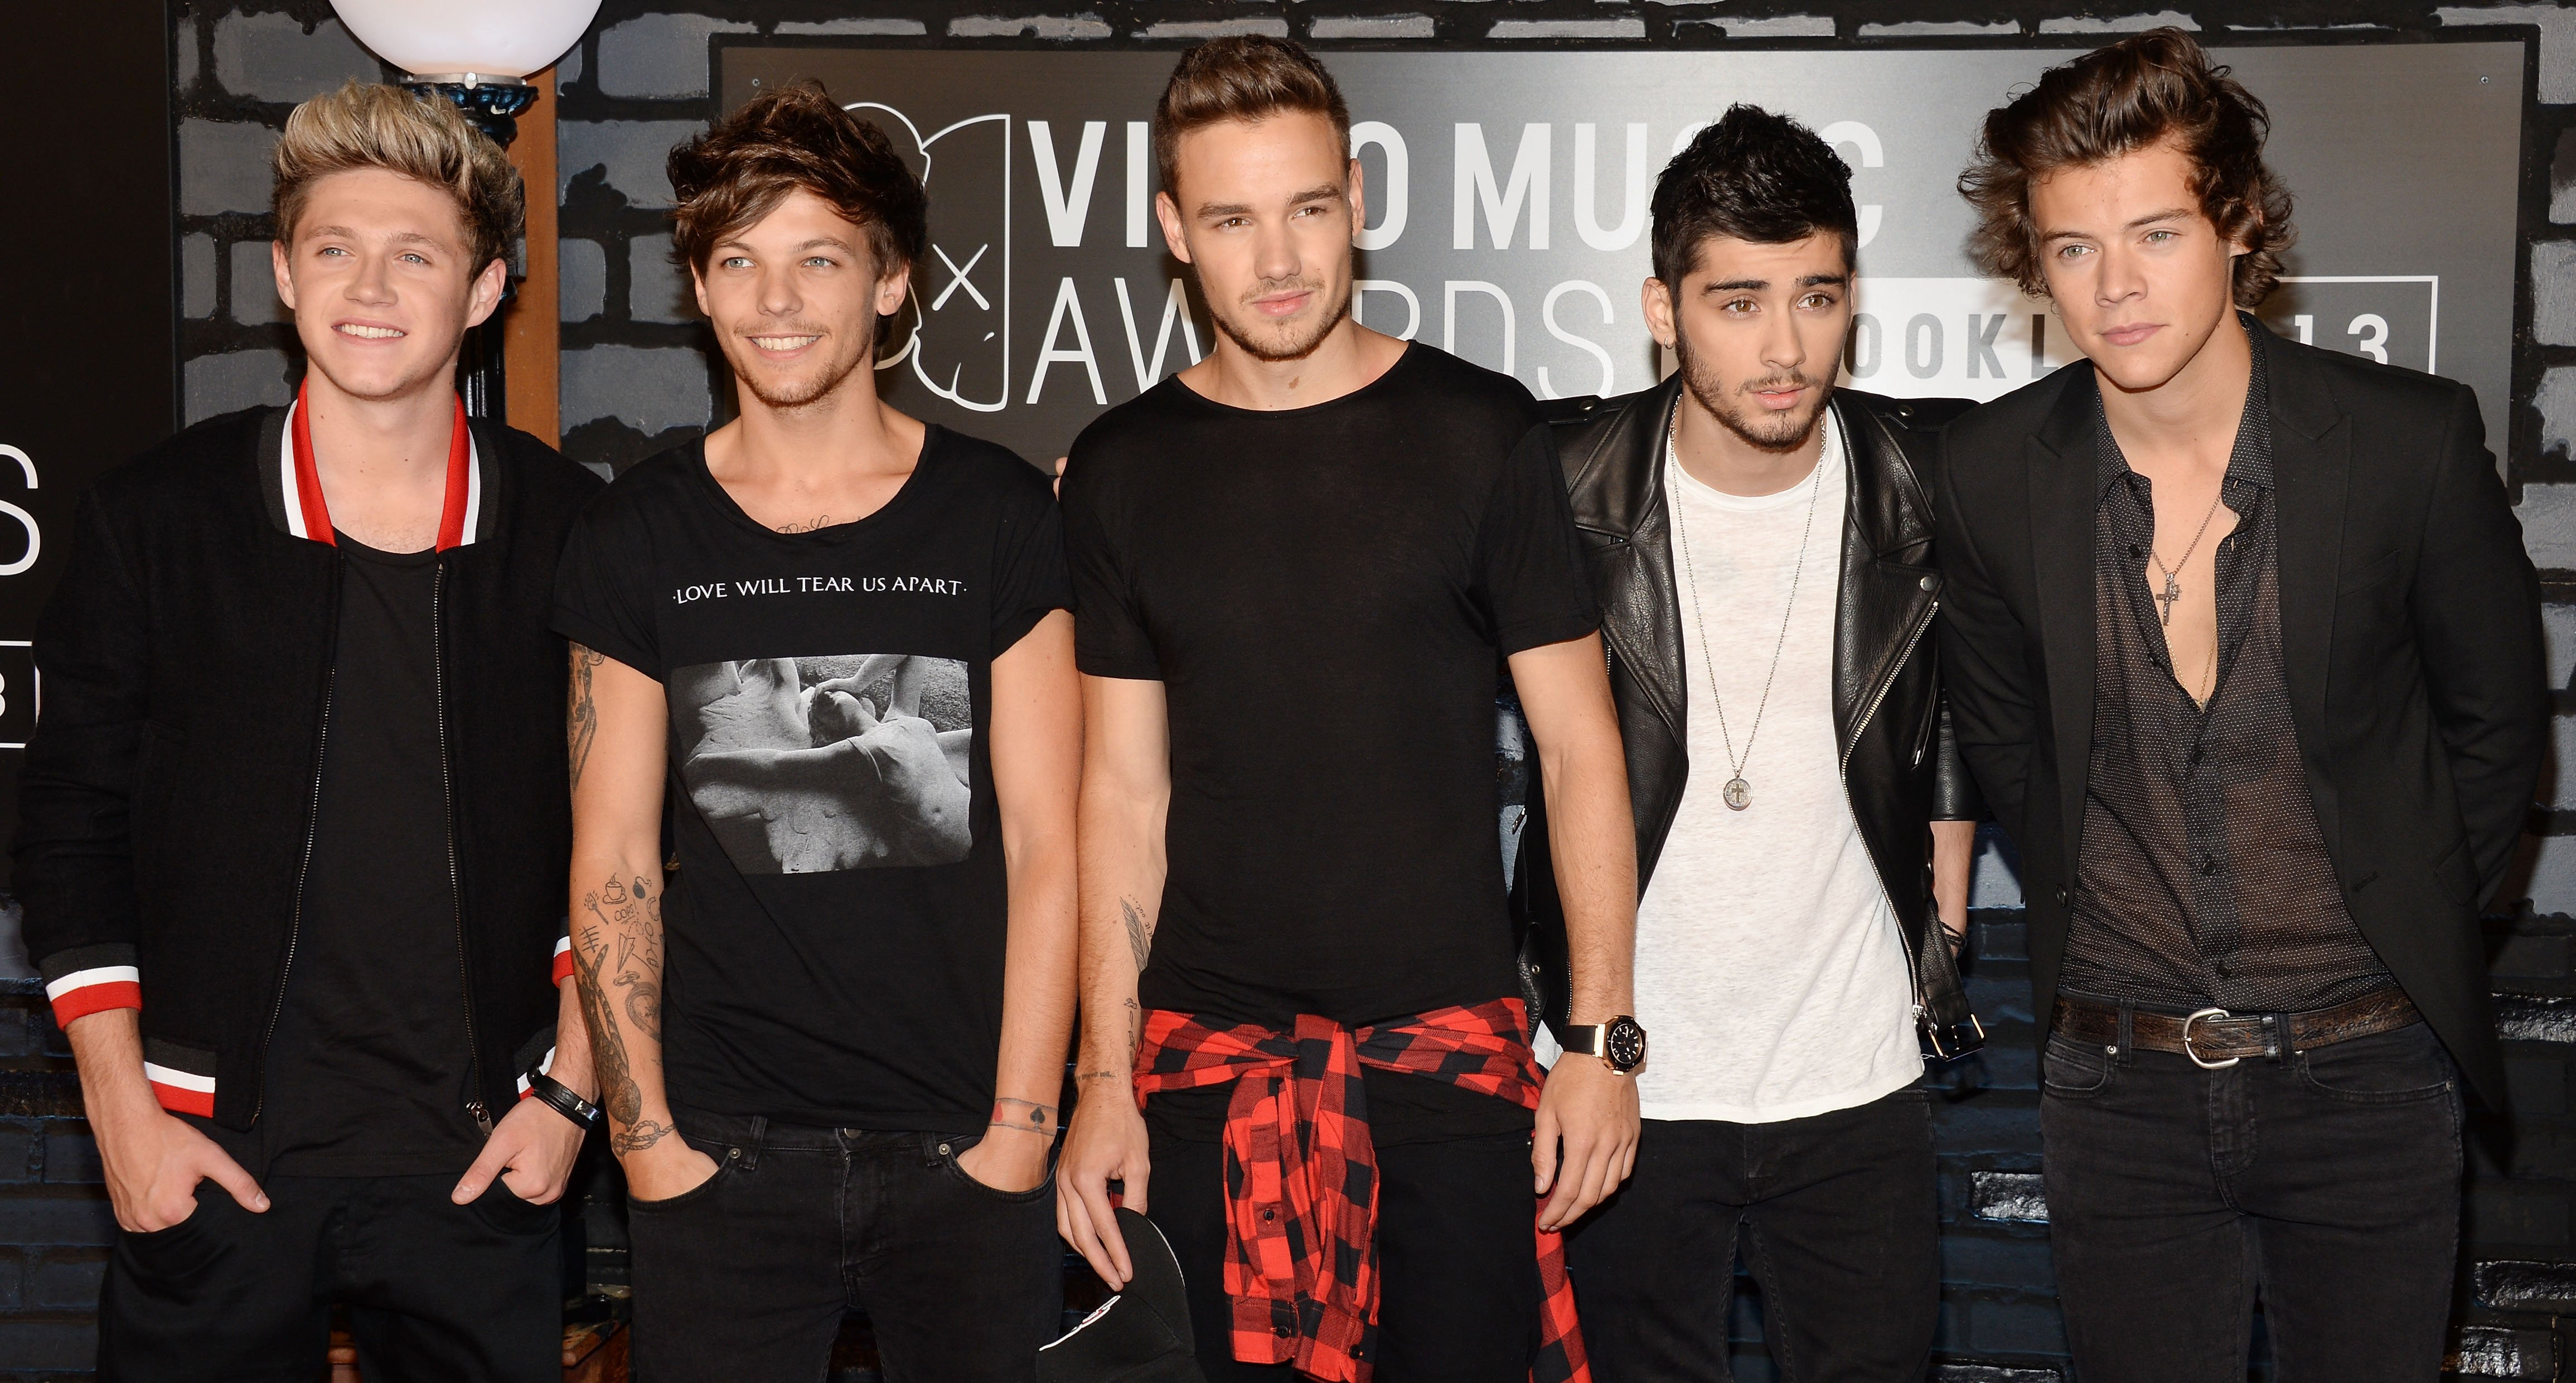 2014 one direction hair download Desktop Backgrounds for 4620x2480